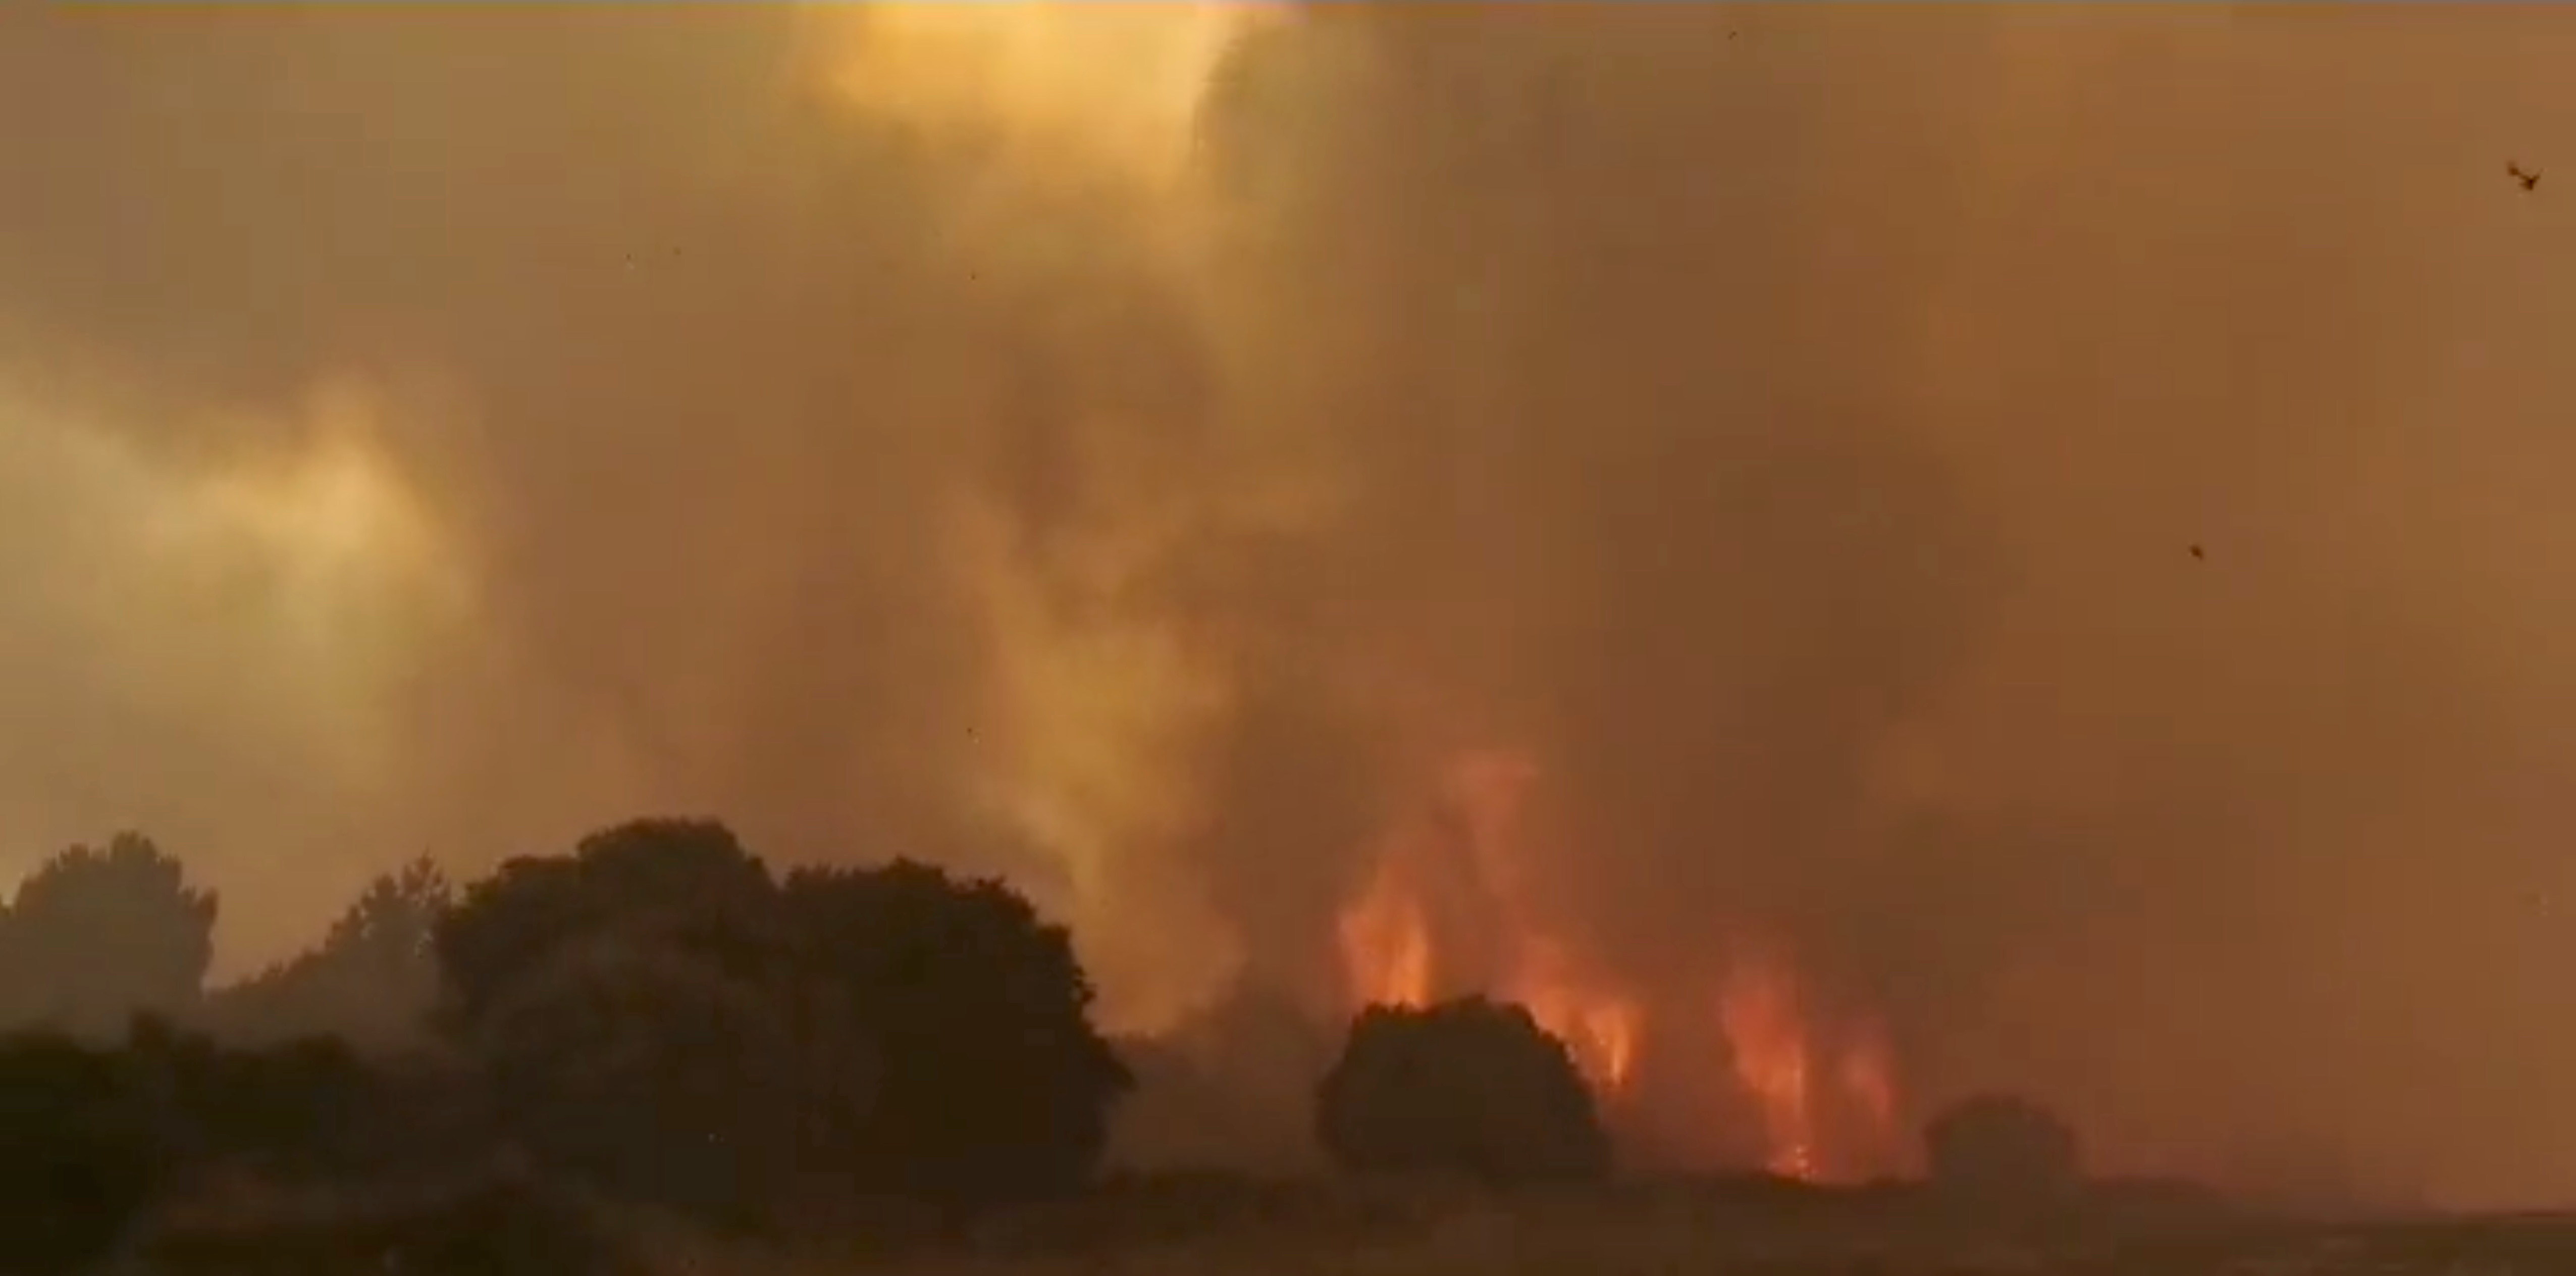 Smoke billows from a wildfire near Cuglieri, Sardinia, Italy July 25, 2021, in this screen grab obtained from a social media video. CRONACHE NUORESI via REUTERS